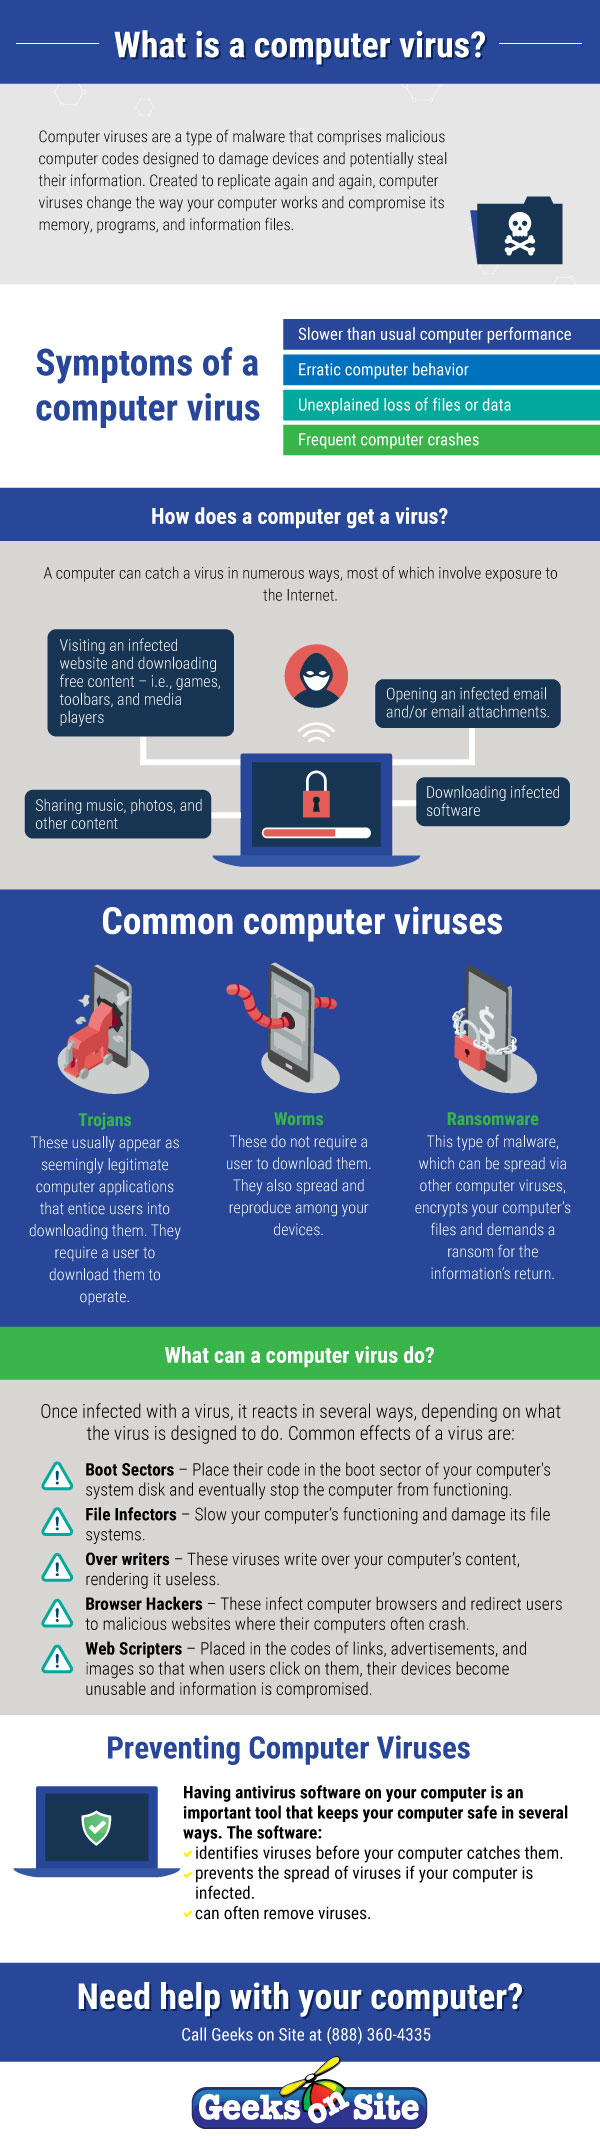 What is a computer virus Infographic